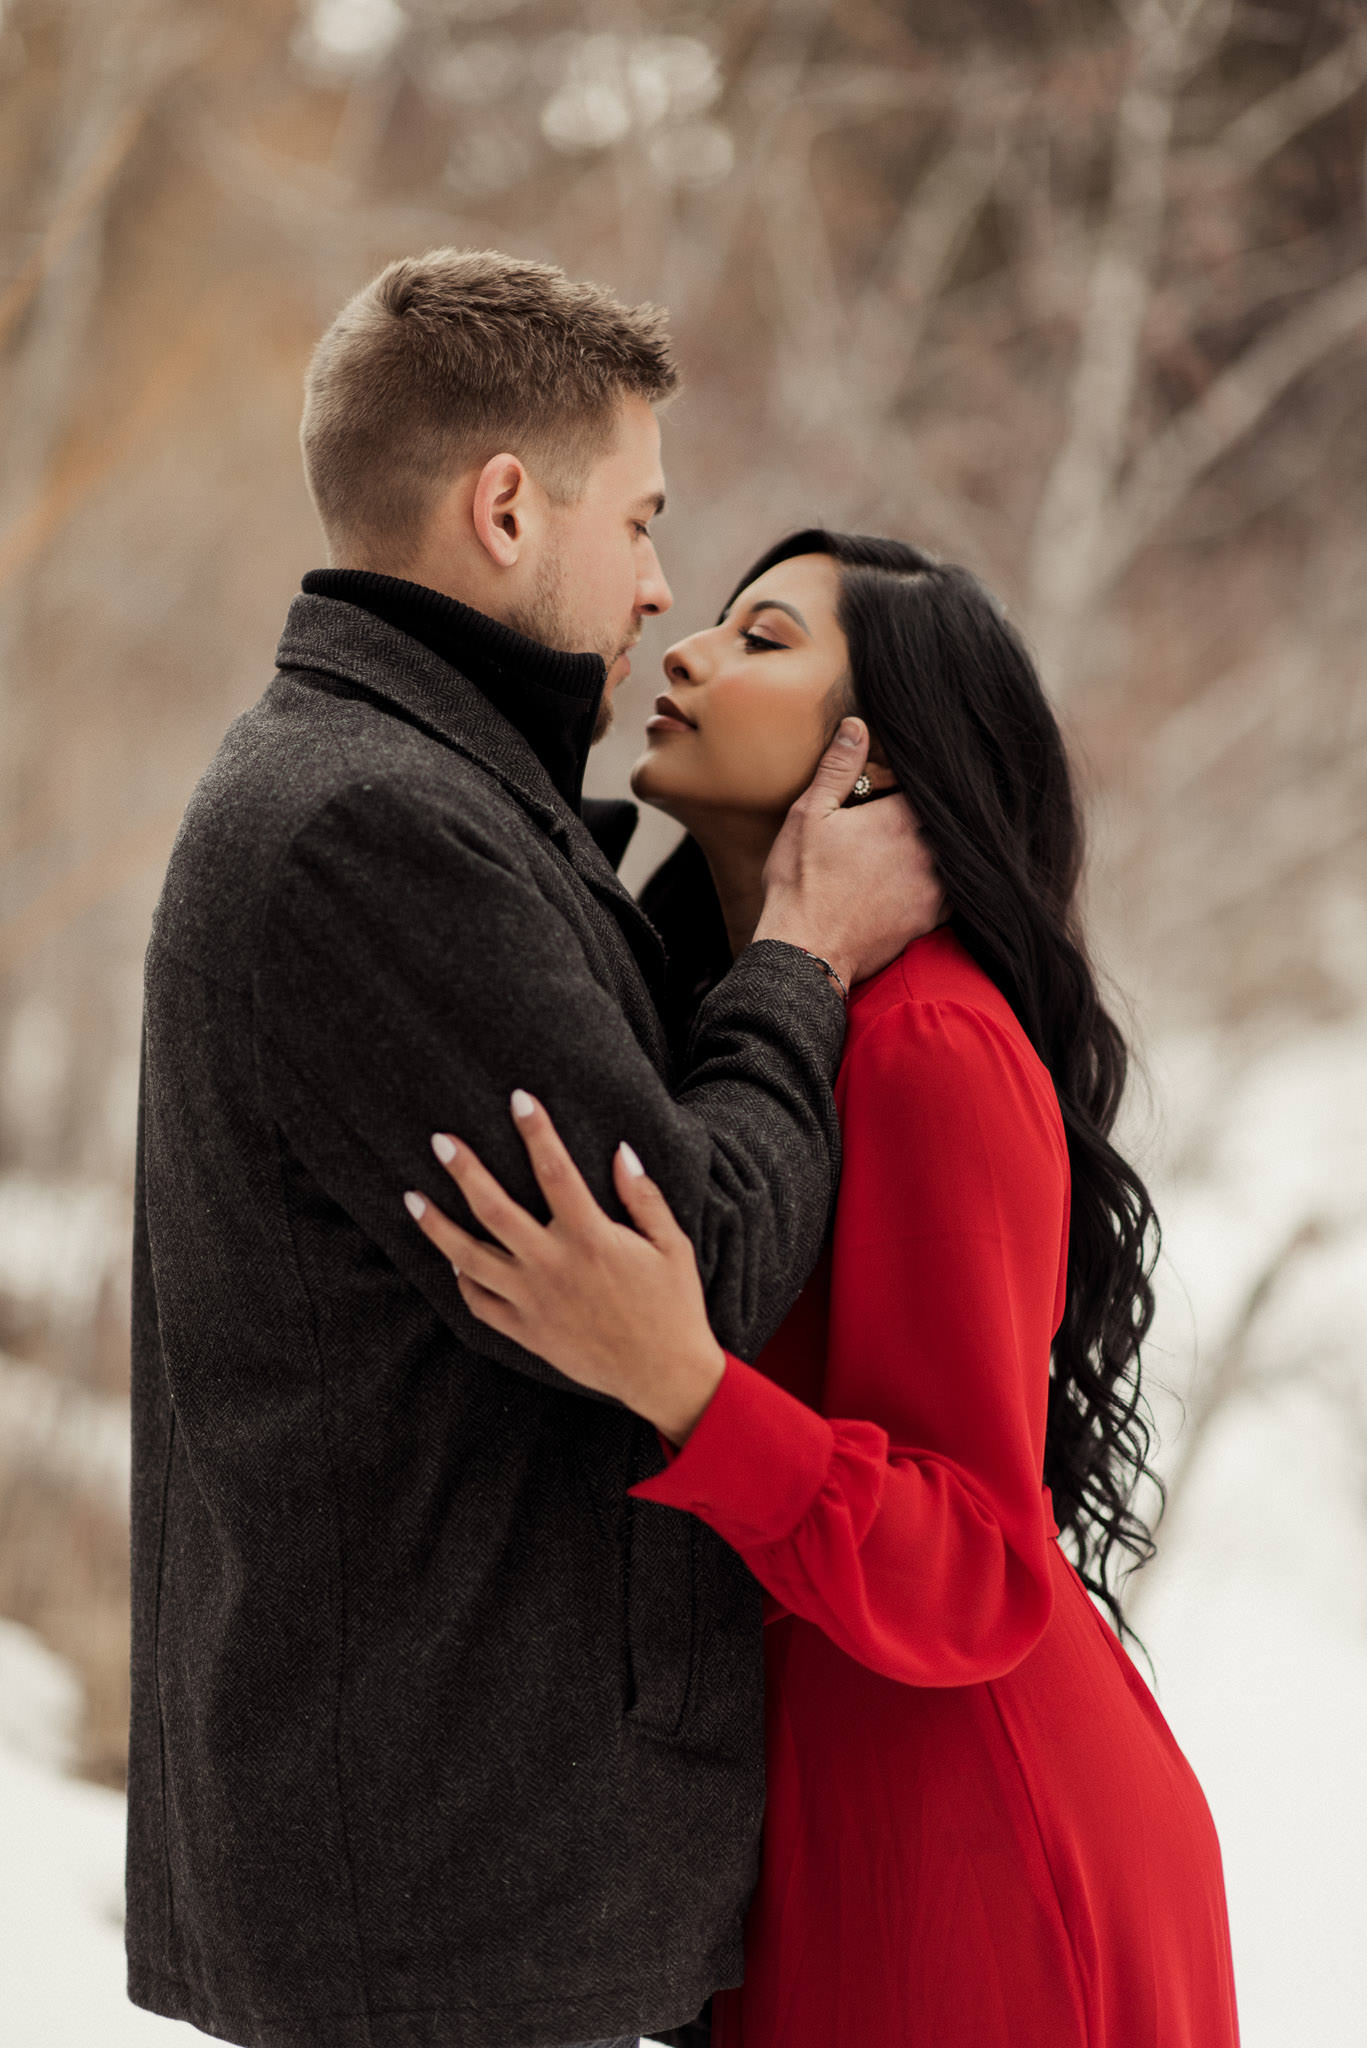 sandra-ryan-colorado-winter-snow-engagement-couples-valentines-red-houston-photographer-sm-3.jpg